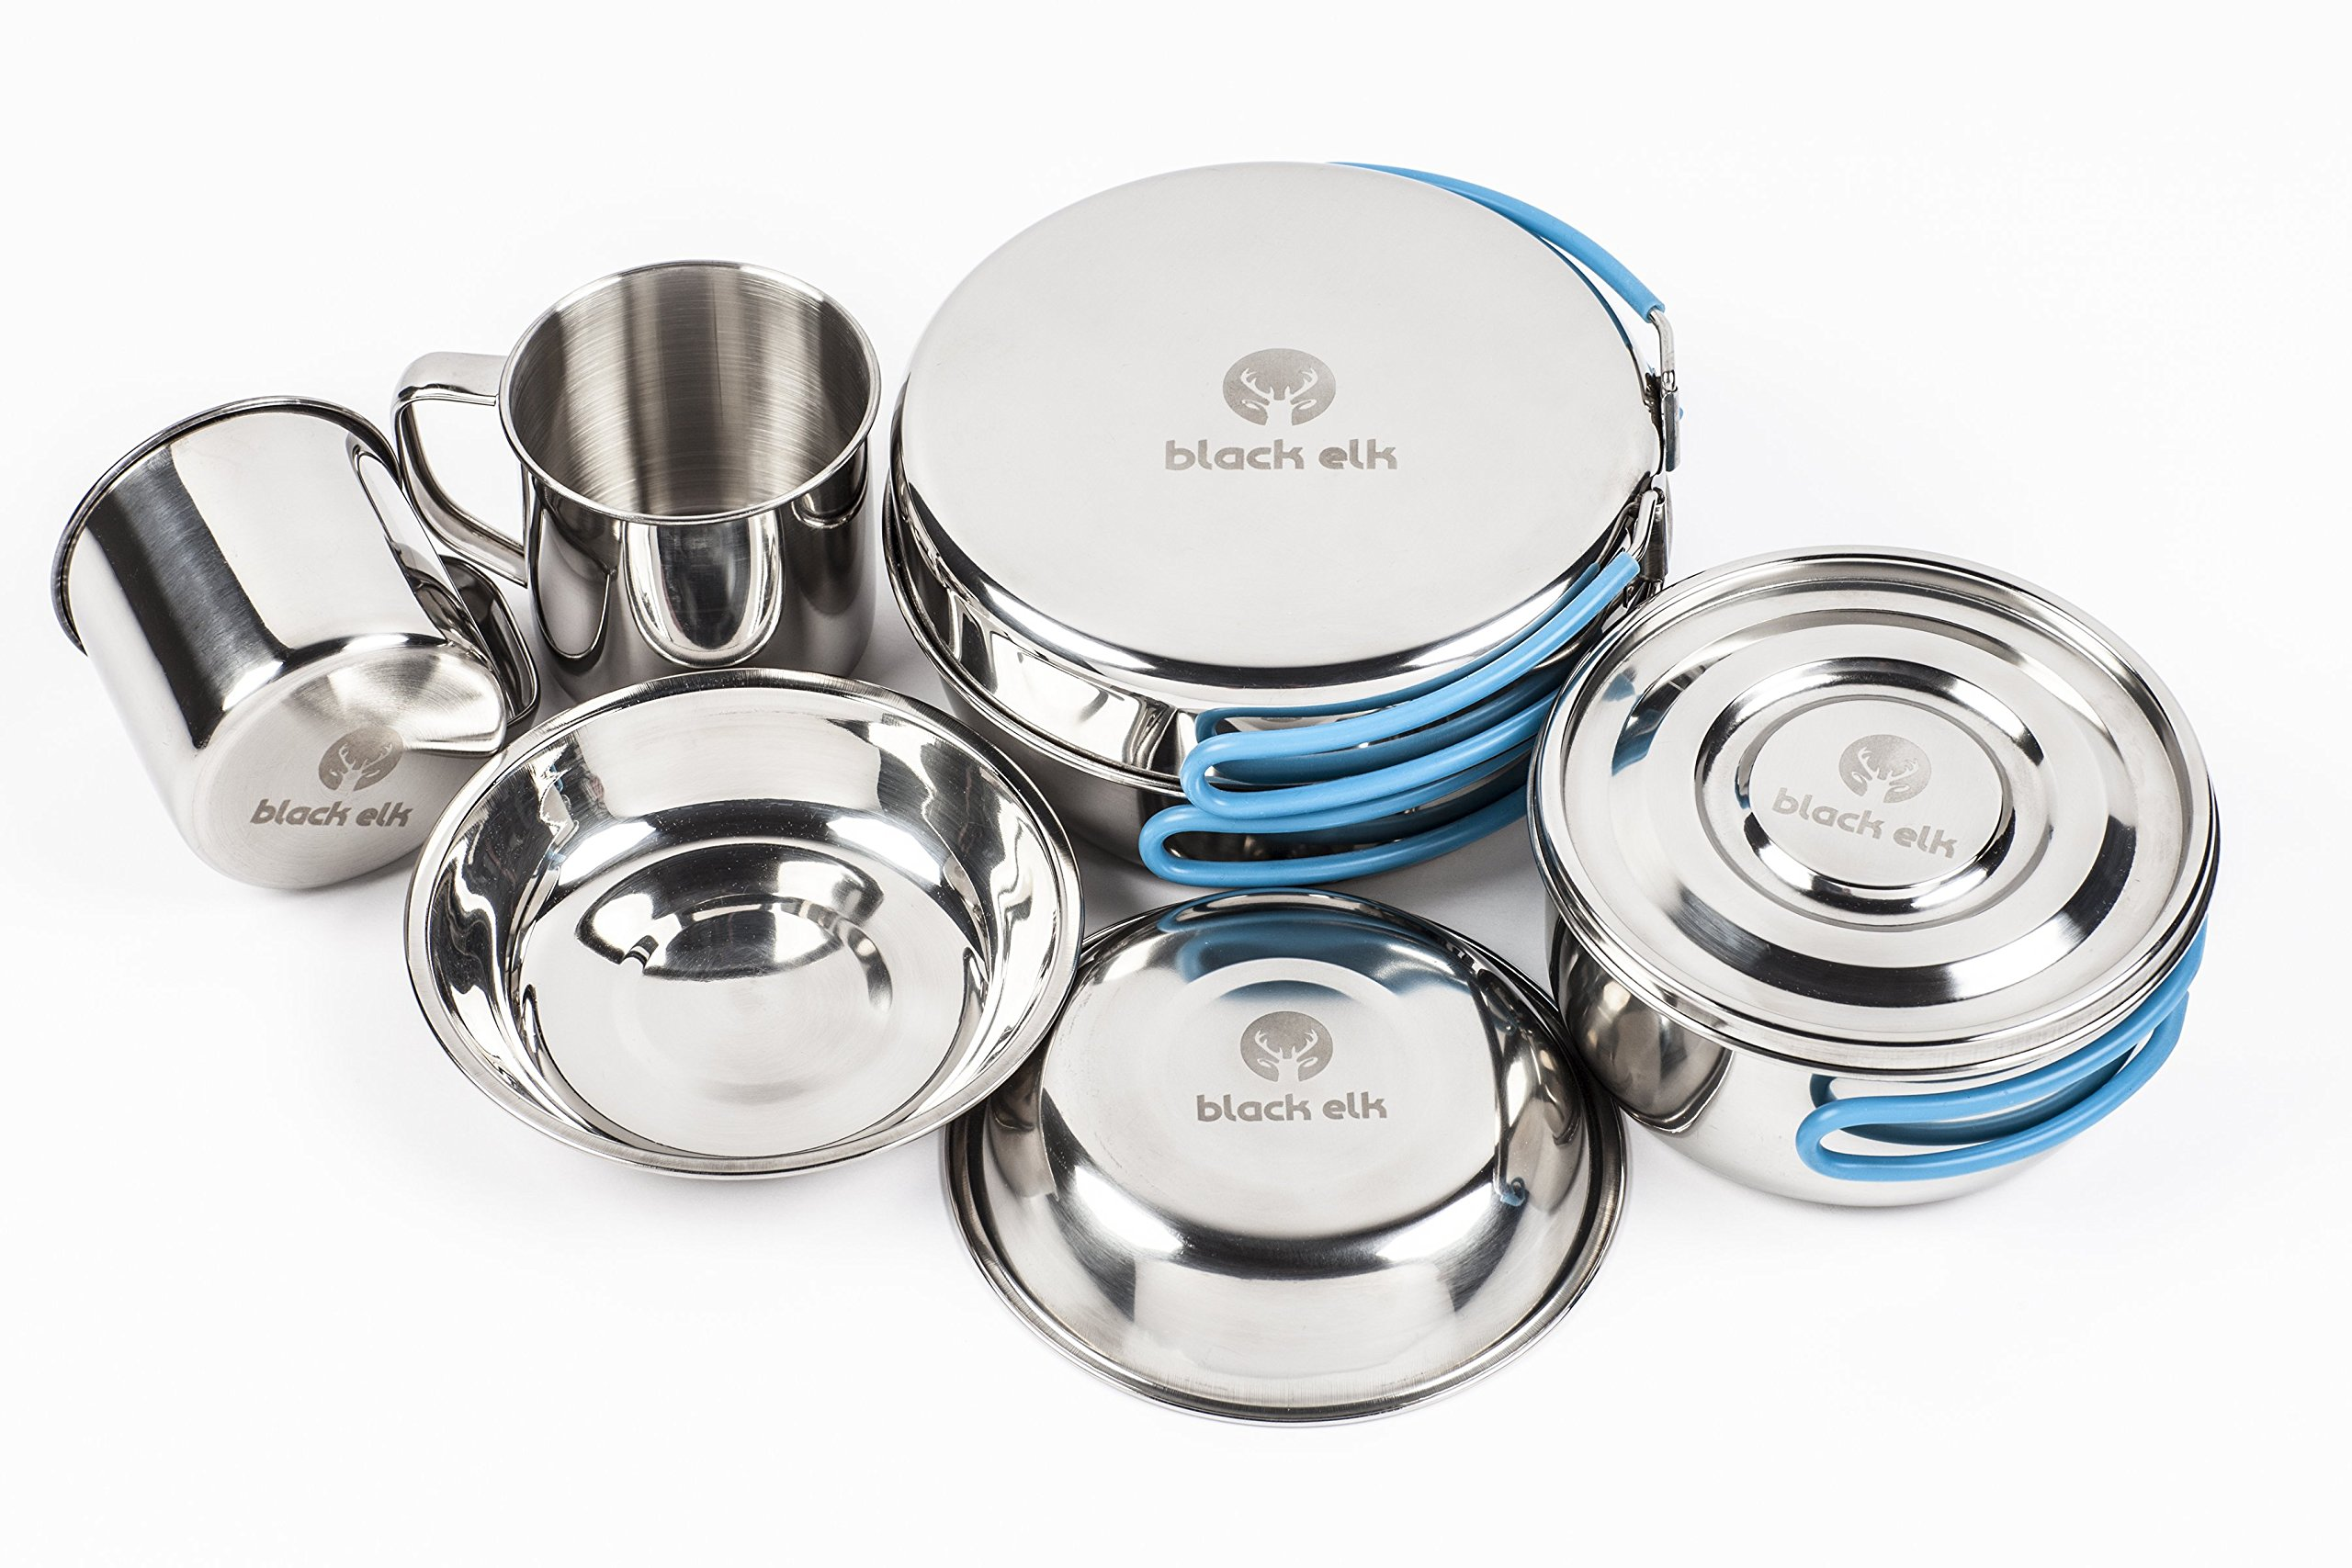 Black Elk Outdoor Cookware Stainless Steel Set - Includes Pots with Lid, Mugs, Skillet, Bowls and Cutlery Kit - Great for Traveling, Camping, Hiking, Biking and Picnic